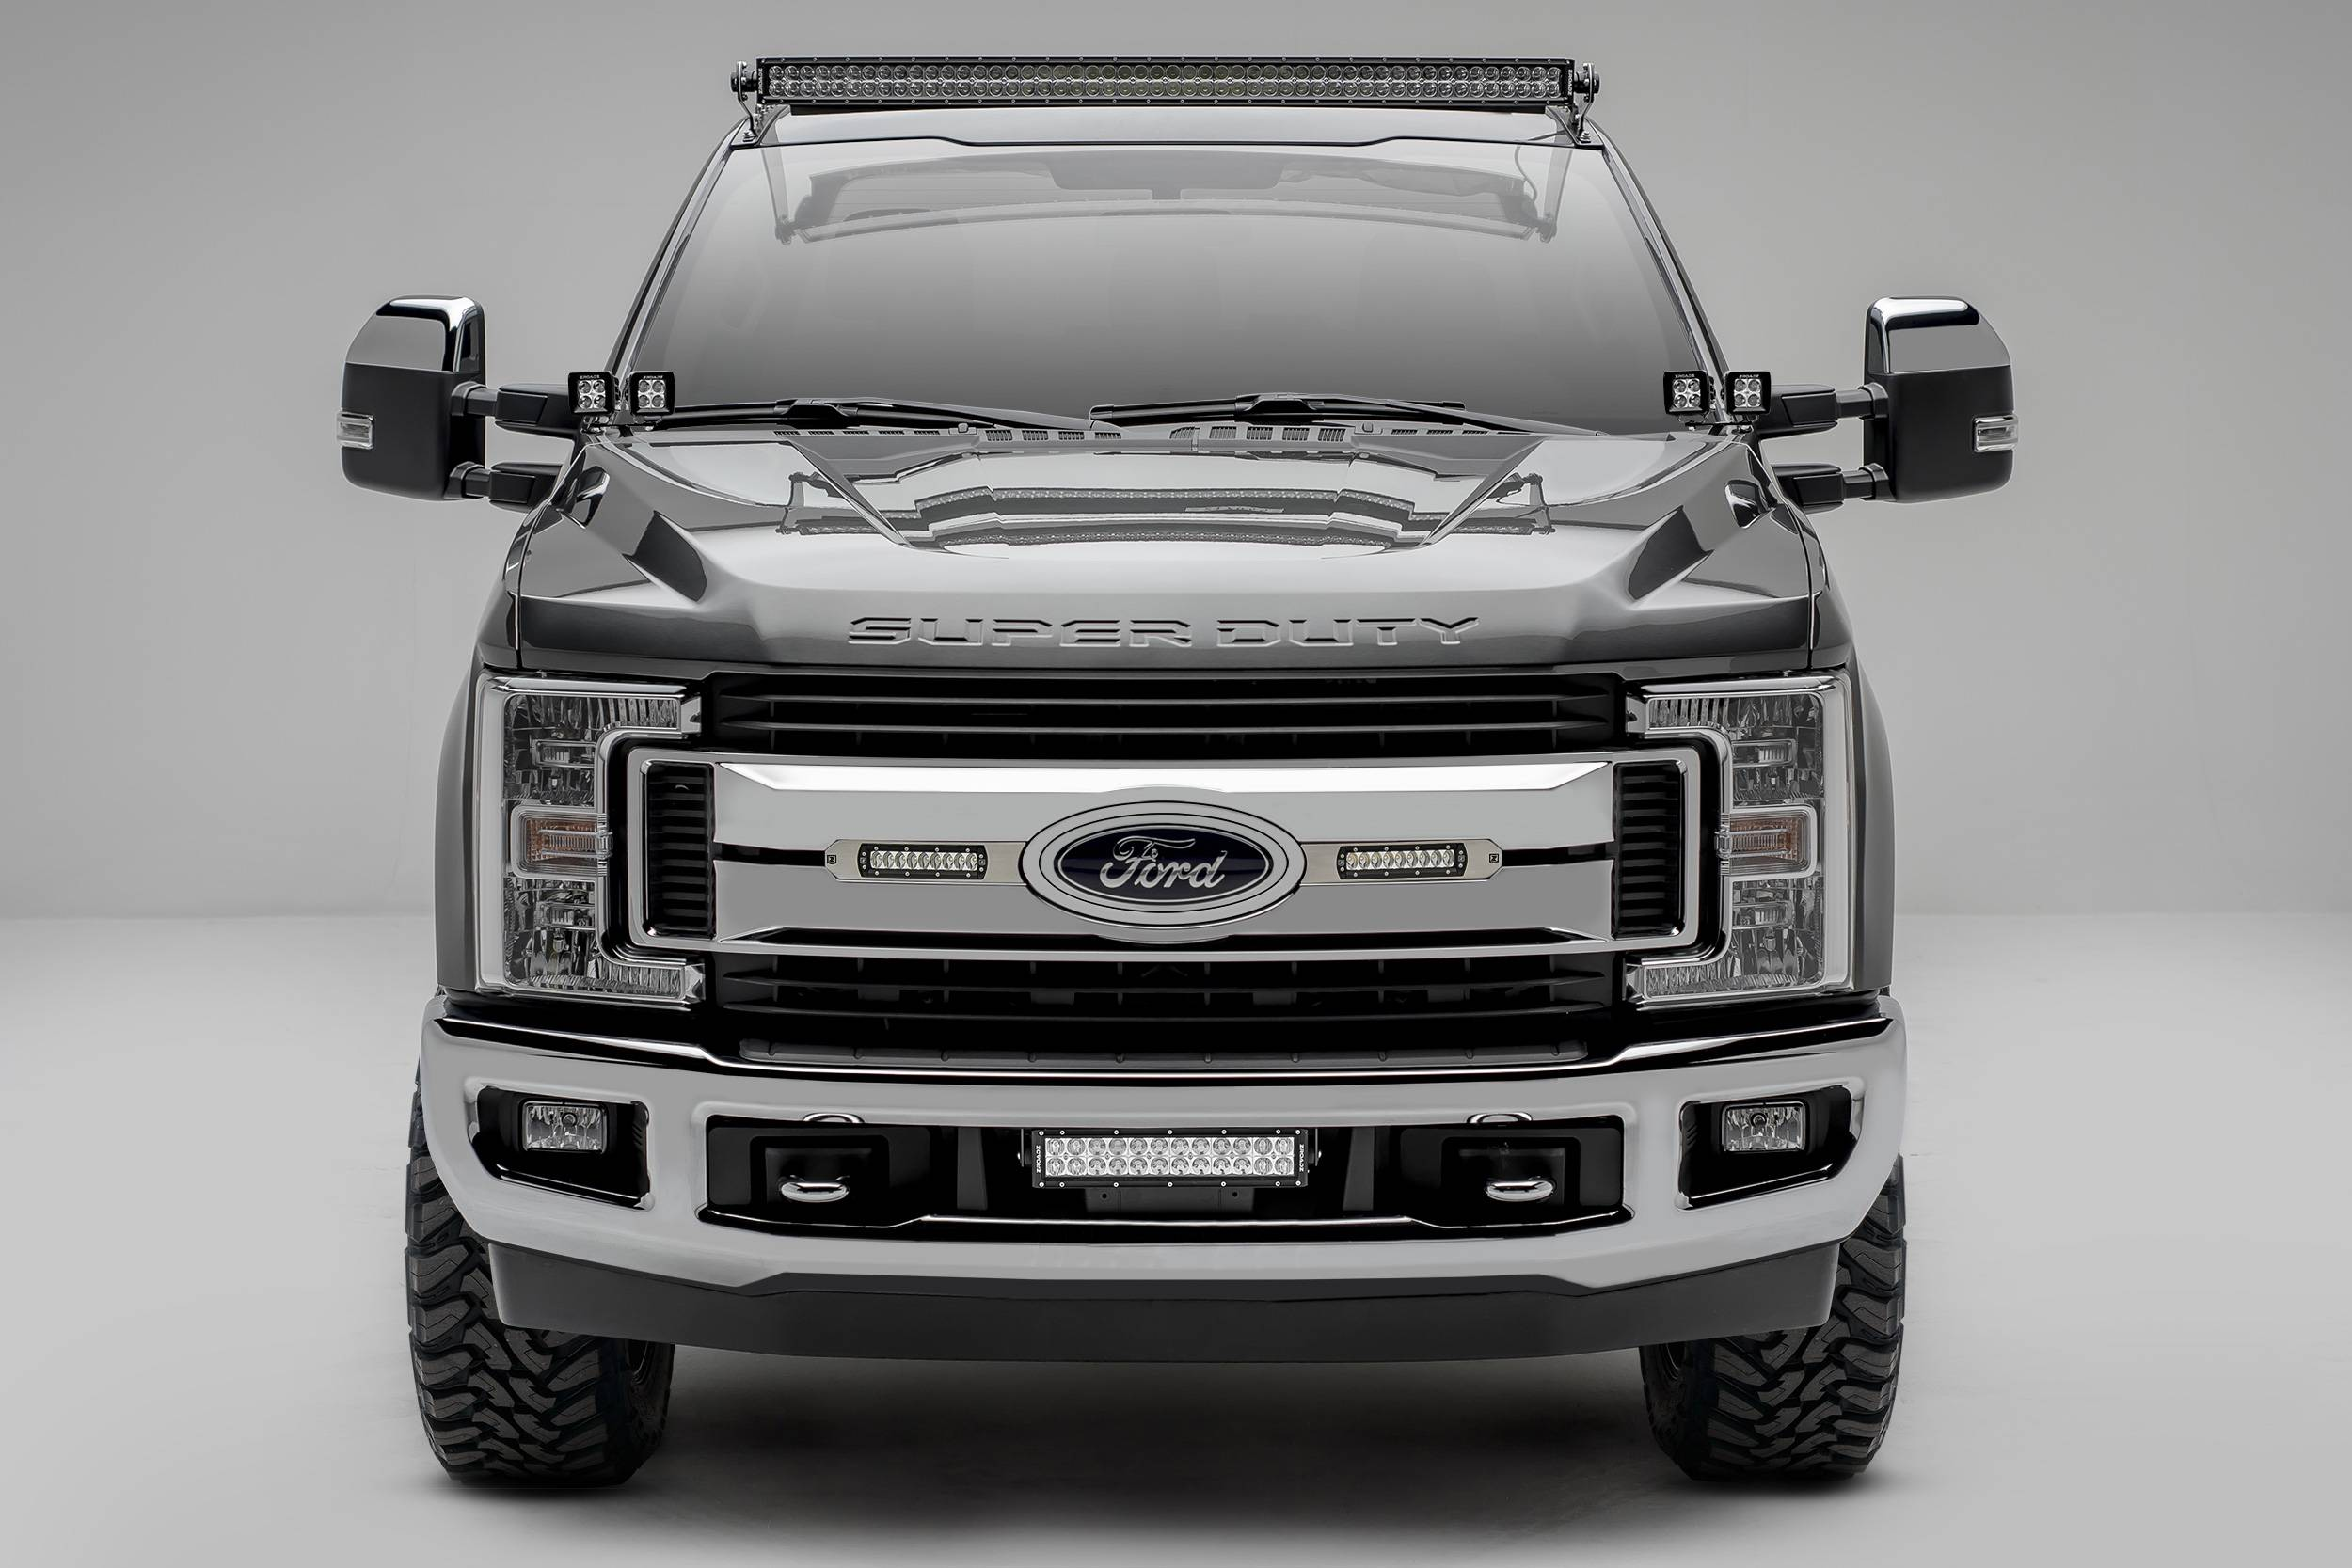 2017-2019 Ford Super Duty XLT OEM Grille LED Kit, Incl. (2) 6 Inch LED Straight Single Row Slim Light Bars - PN #Z415573-KIT